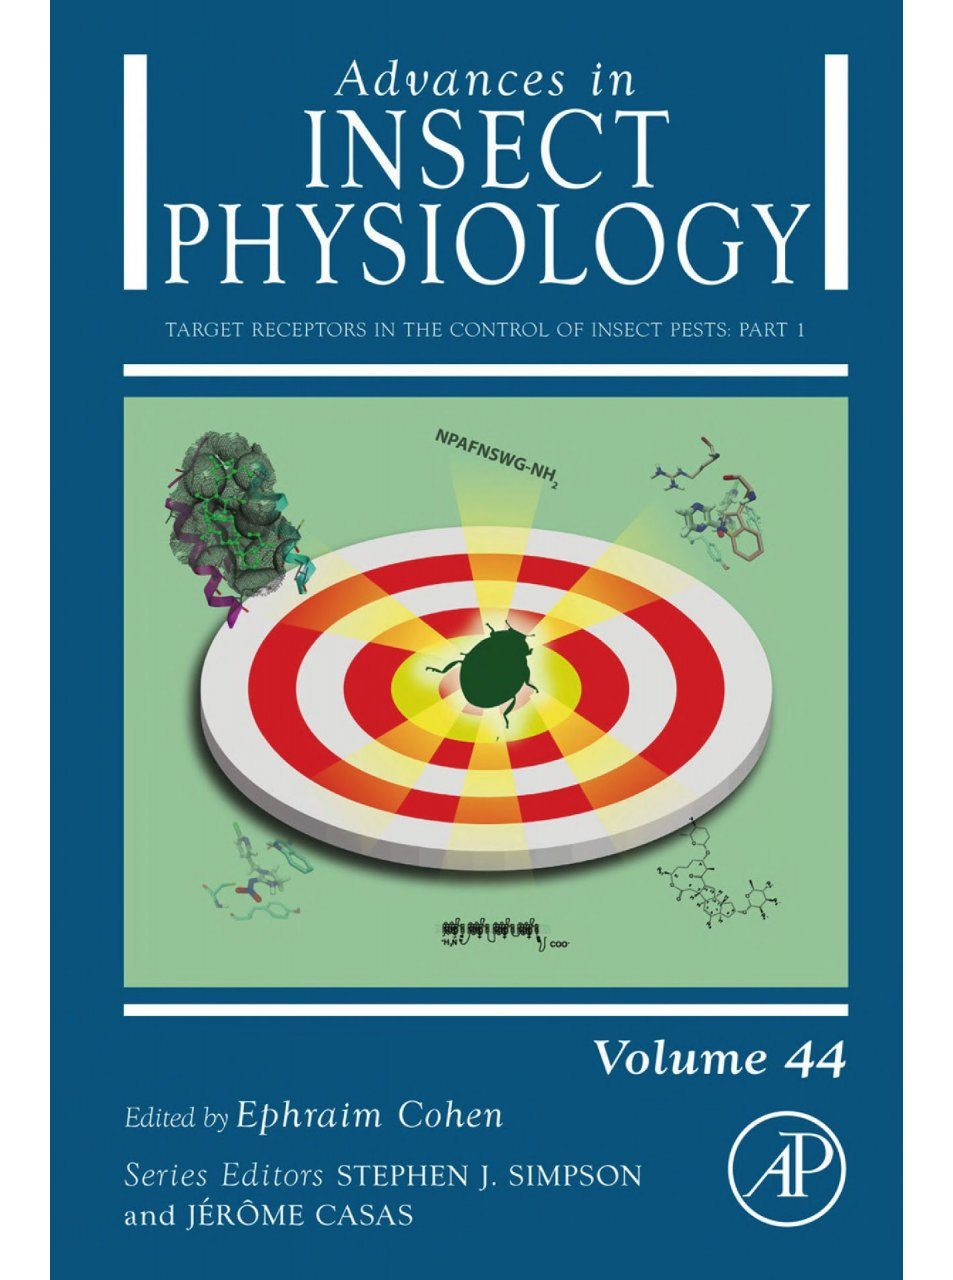 Advances in Insect Physiology, Volume 44